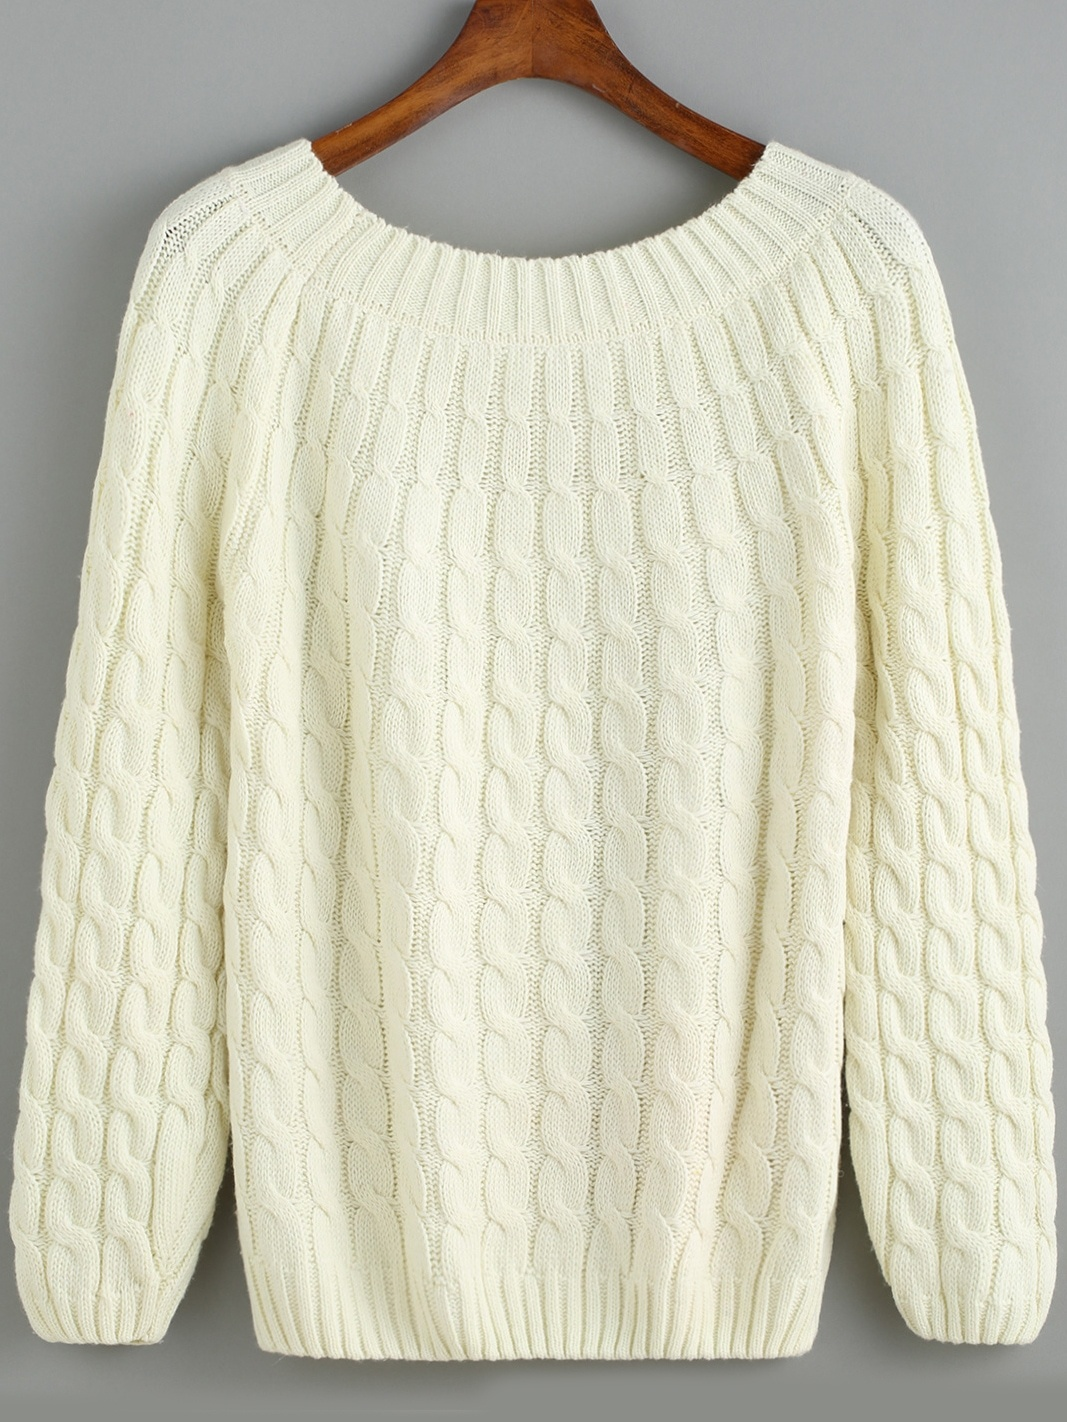 White Round Neck Cable Knit Sweater